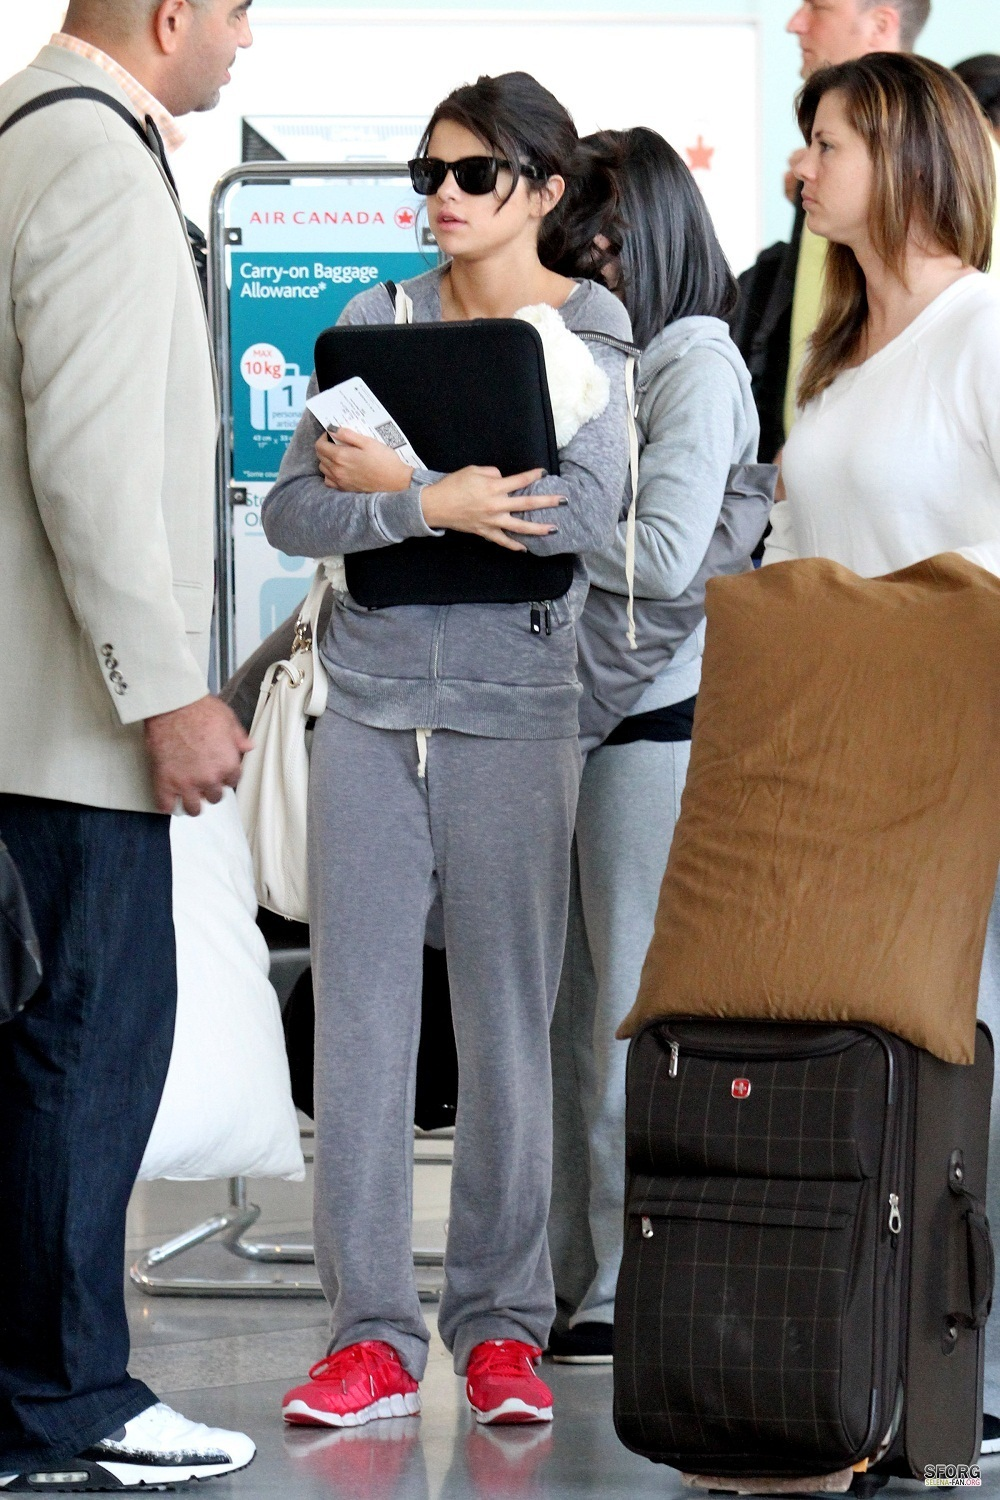 Selena - Departing from Toronto's airport - June 20, 2011 - selena-gomez photo